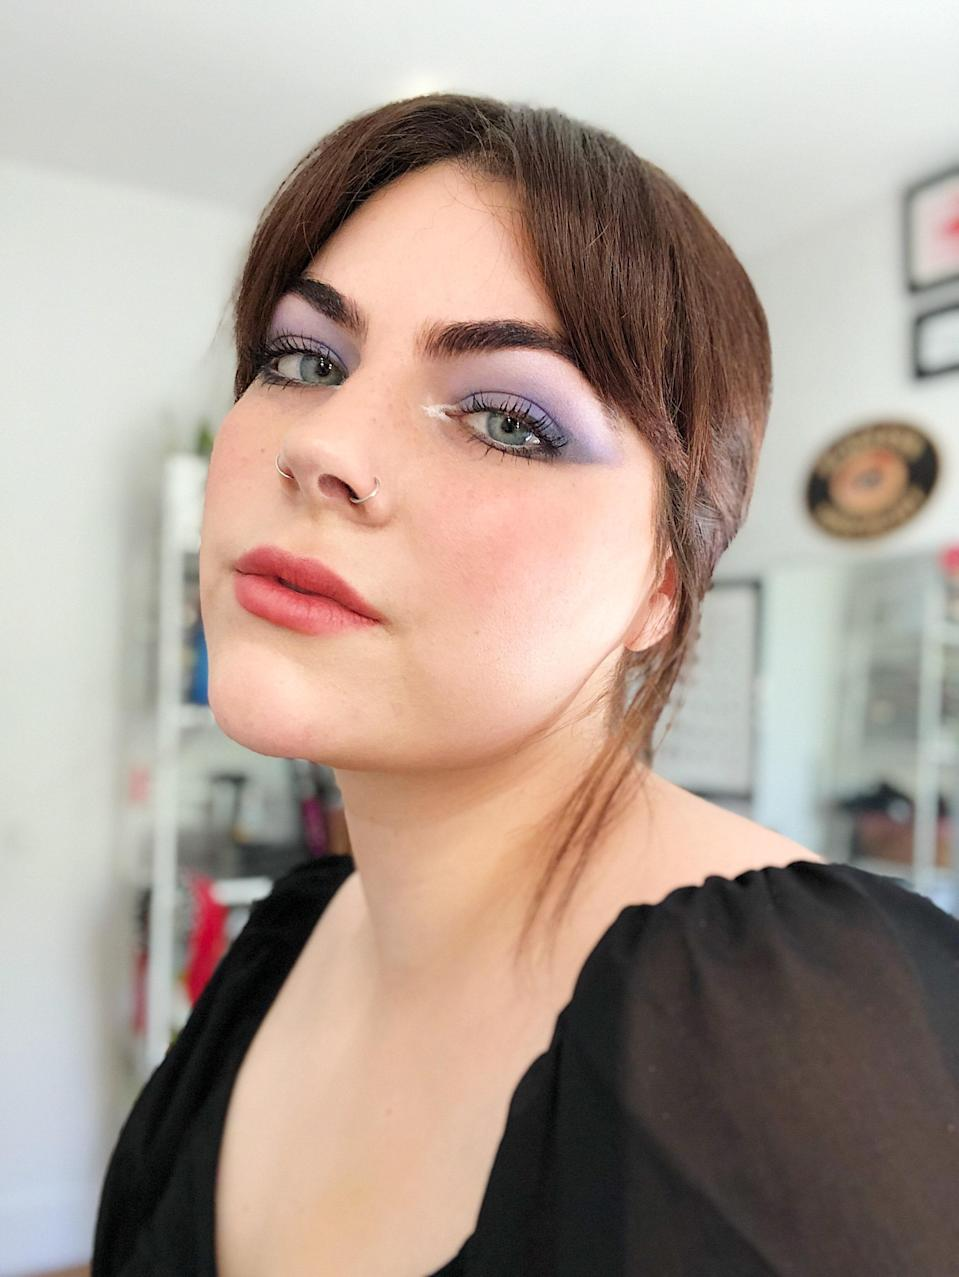 Staff writer Nicola Dall'Asen Wears Urban Decay x Prince Let's Go Crazy Eye Shadow Palette, Kajal Eyeliners, and Liquid Highlighter.